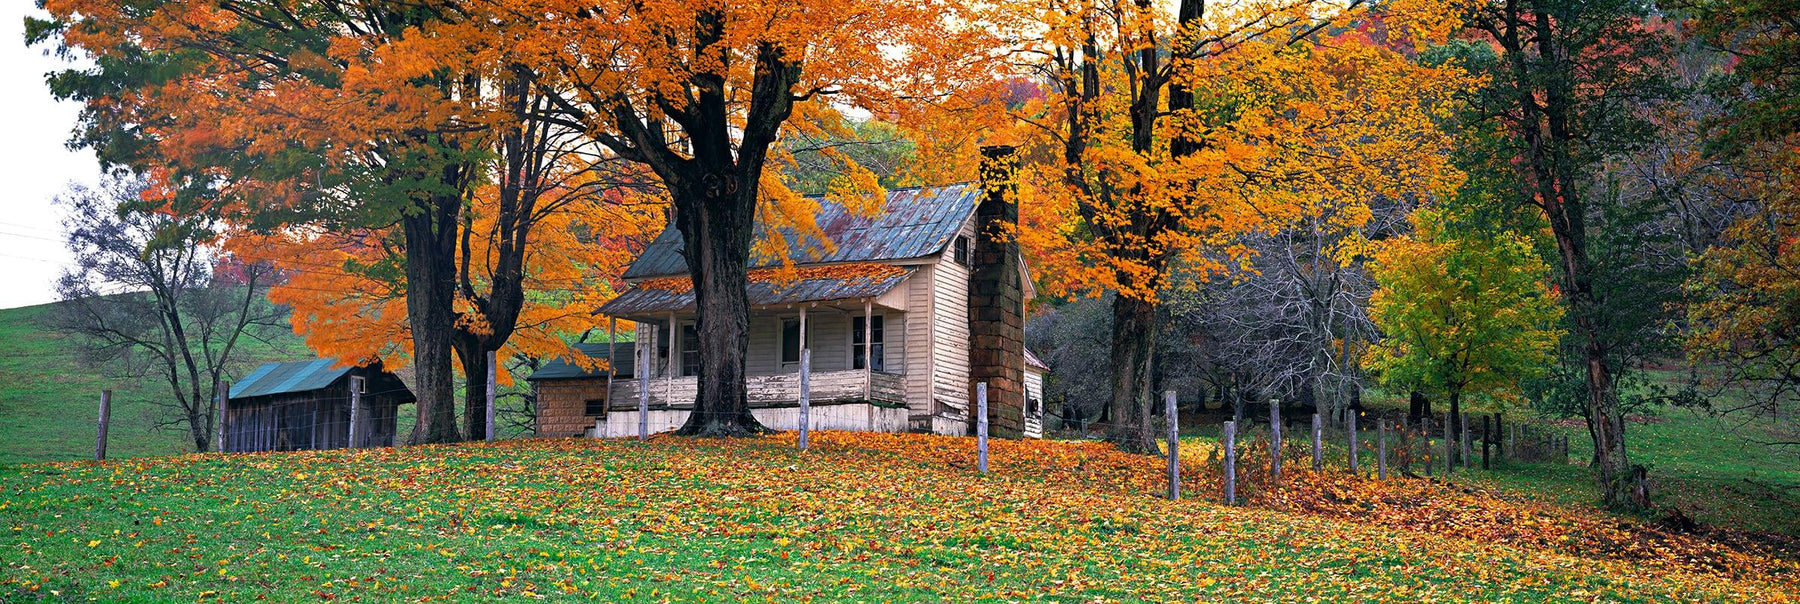 Old cottage and shack surrounded by Autumn colored trees in the leaf covered hills of Meadow River West Virginia